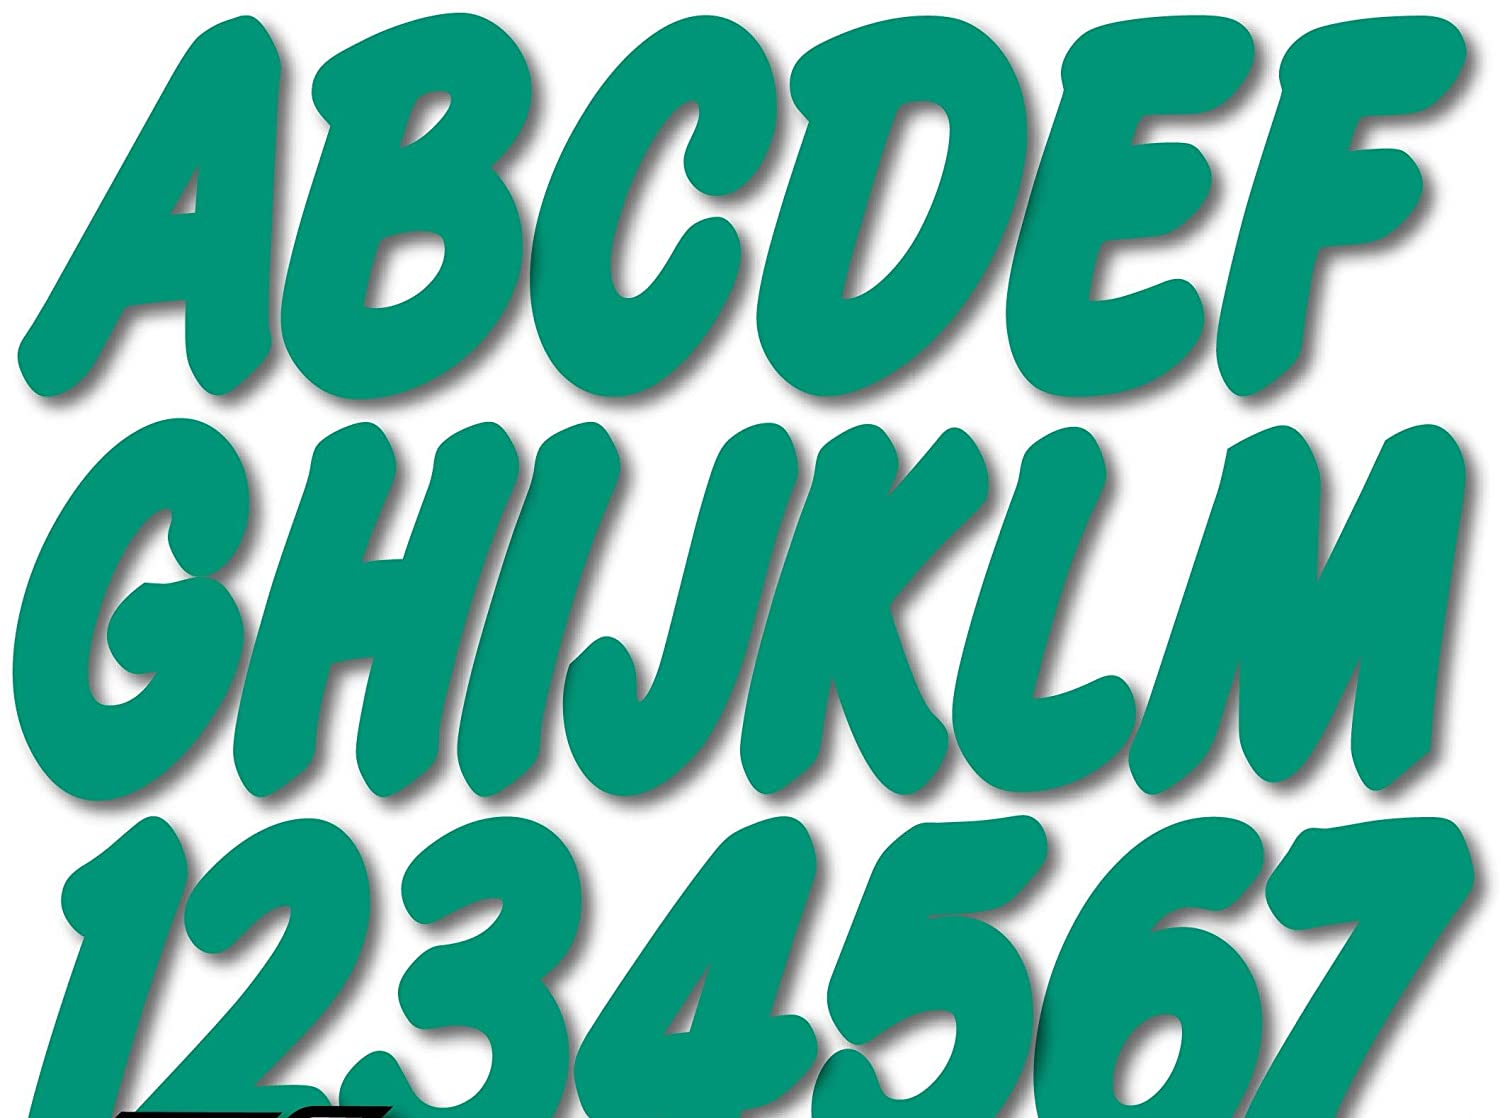 Stiffie Whip-One Teal 3 Alpha-Numeric Registration Identification Numbers Stickers Decals for Boats /& Personal Watercraft